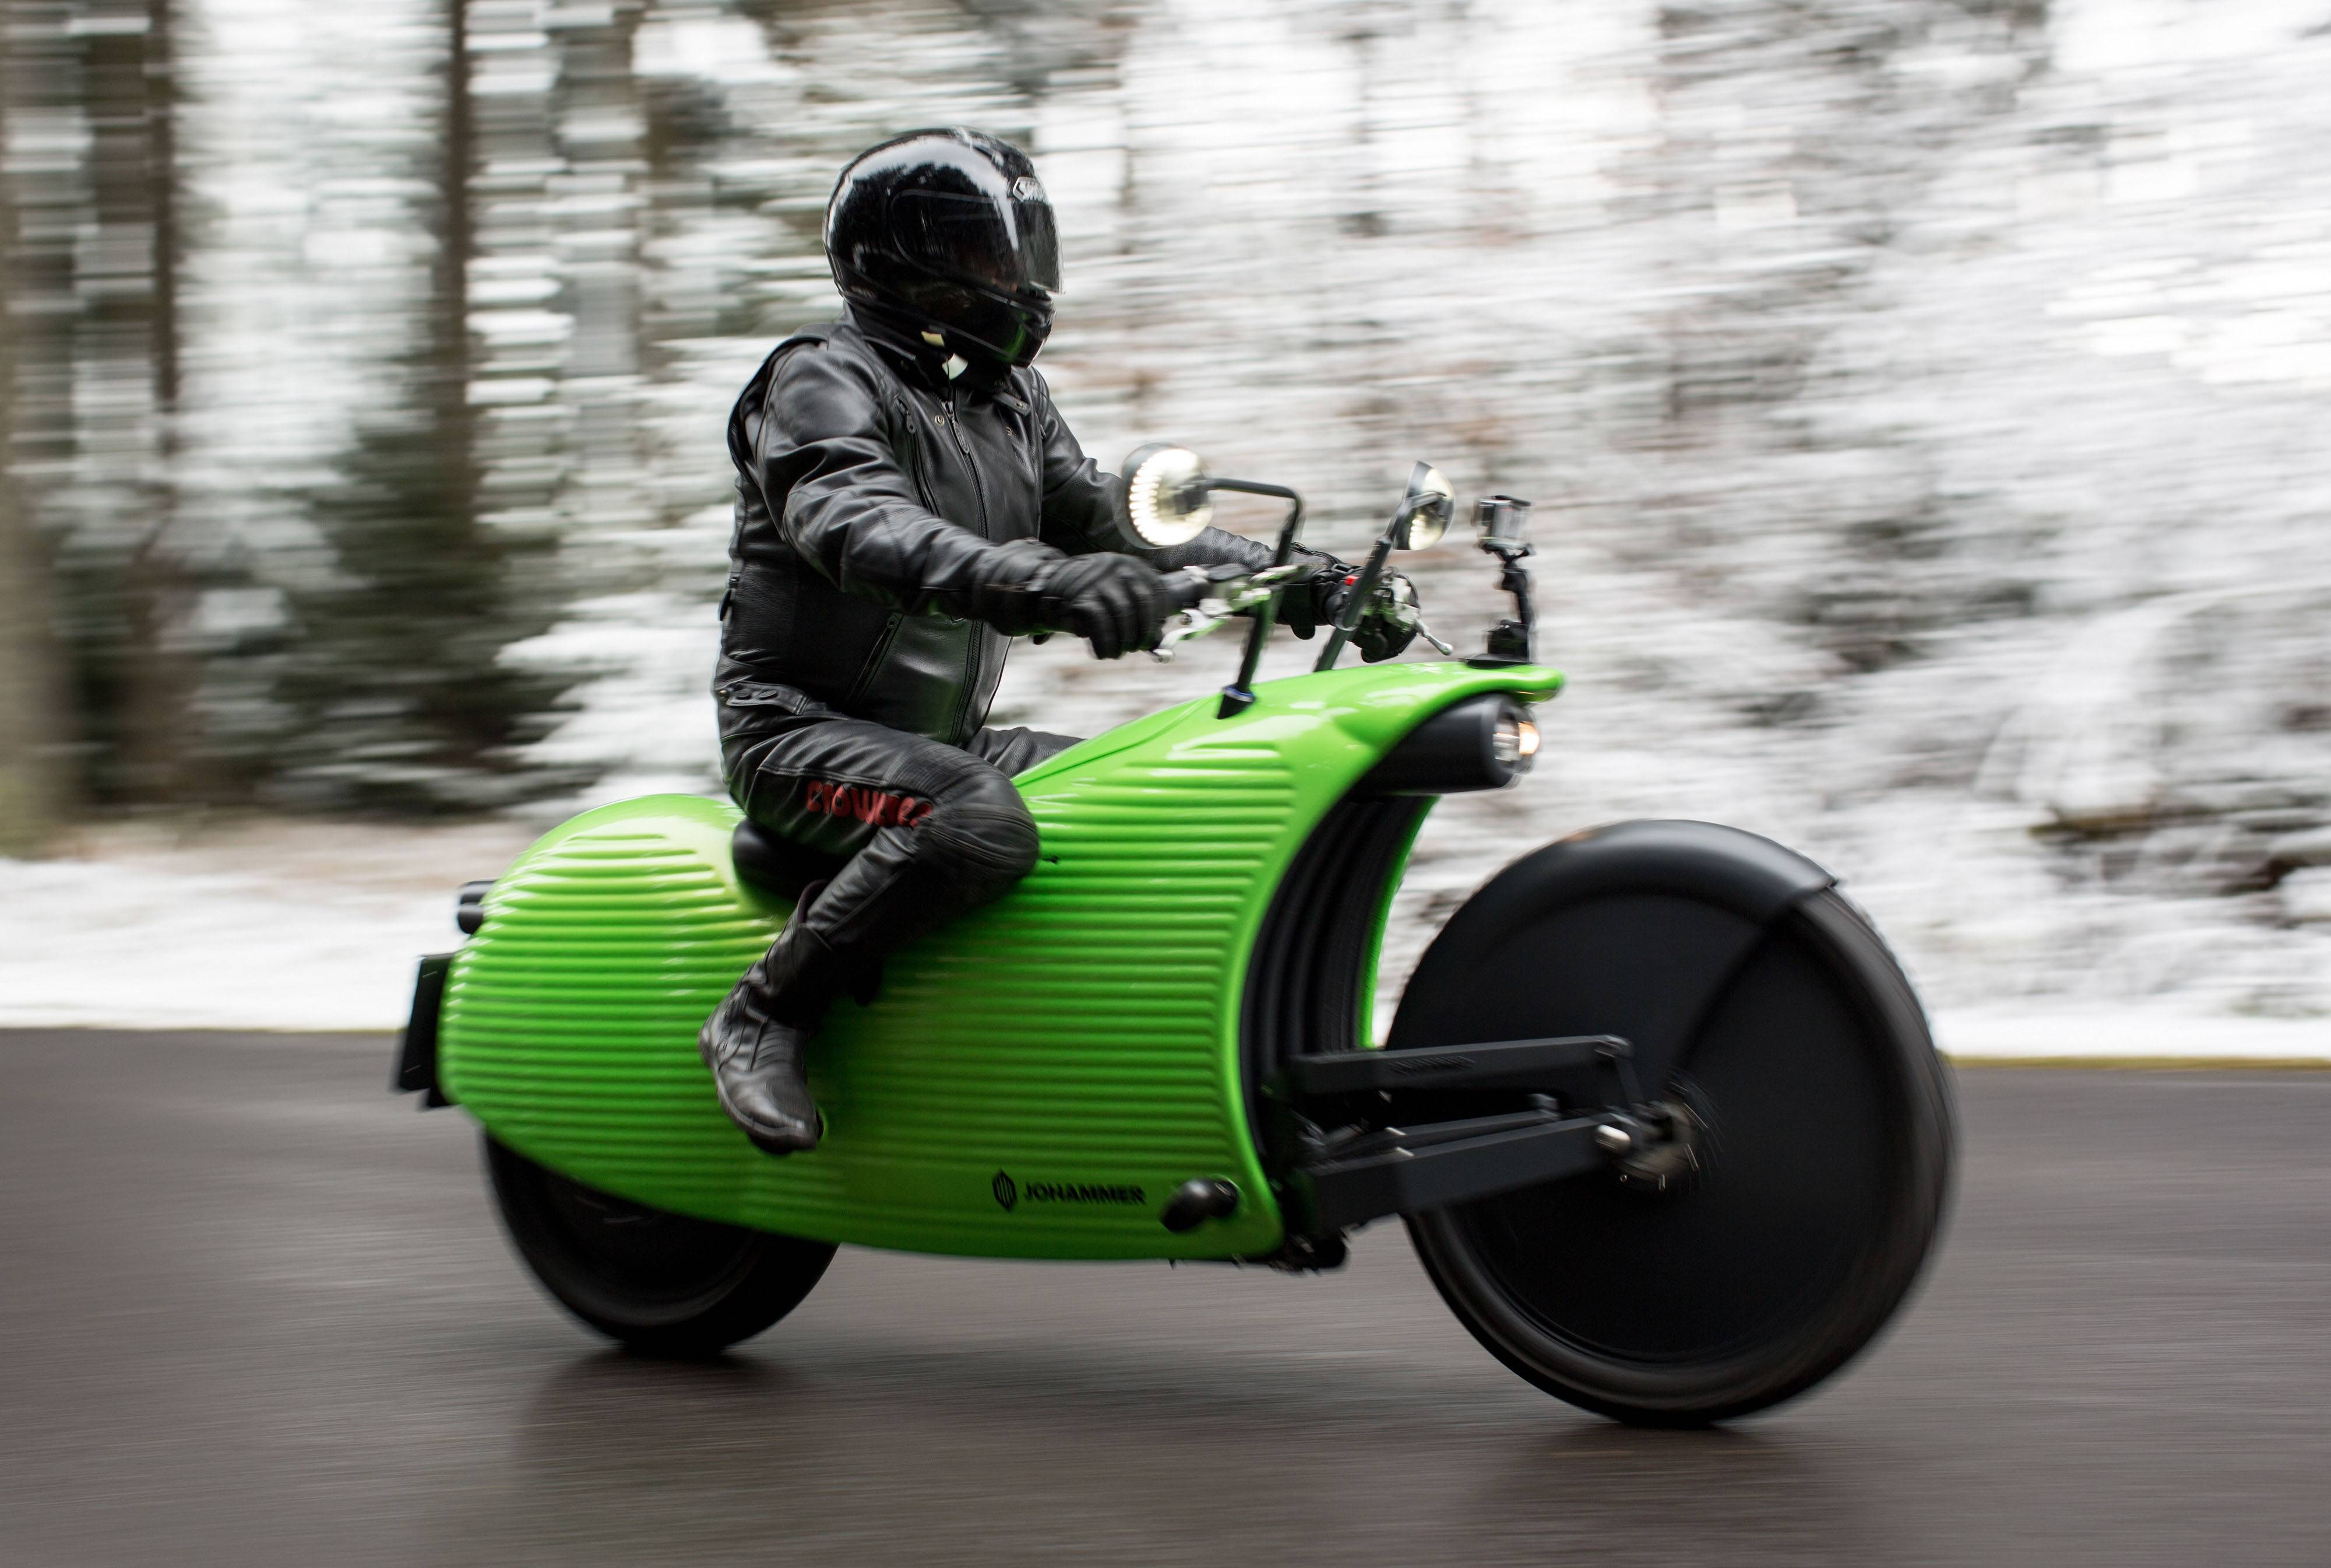 A Johammer electric motorcycle in Bad Leonfelden, Austria, on Nov. 8, 2016.